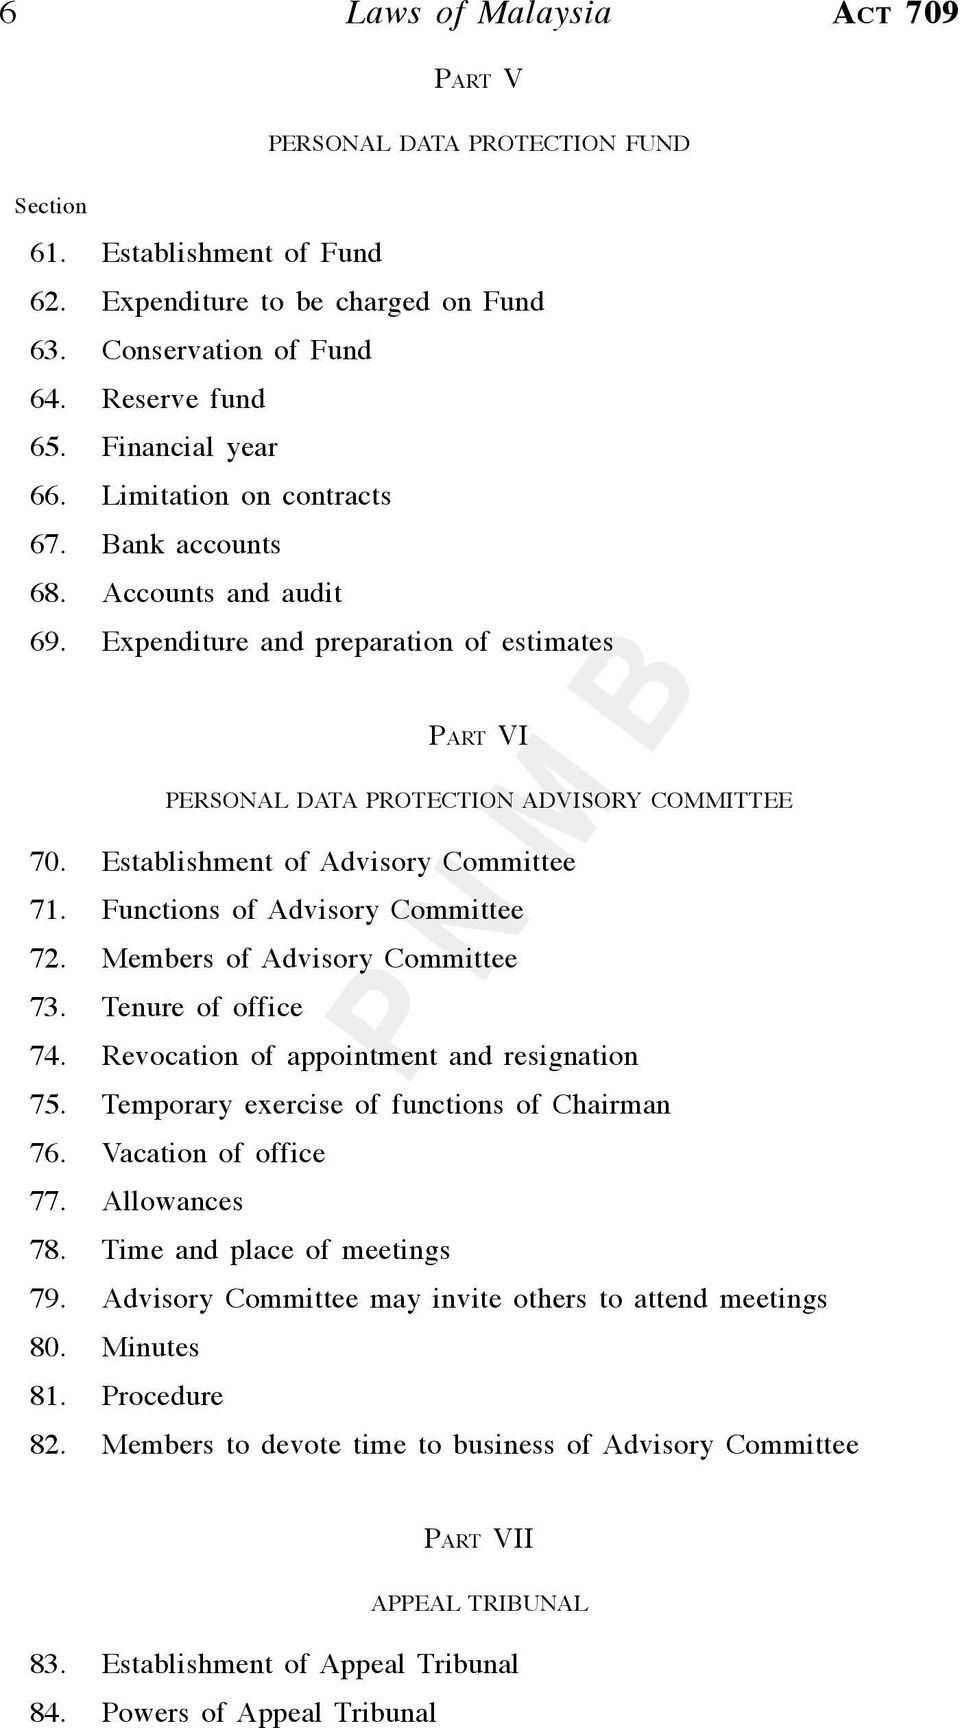 Establishment of Advisory Committee 71. Functions of Advisory Committee 72. Members of Advisory Committee 73. Tenure of office 74. Revocation of appointment and resignation 75.